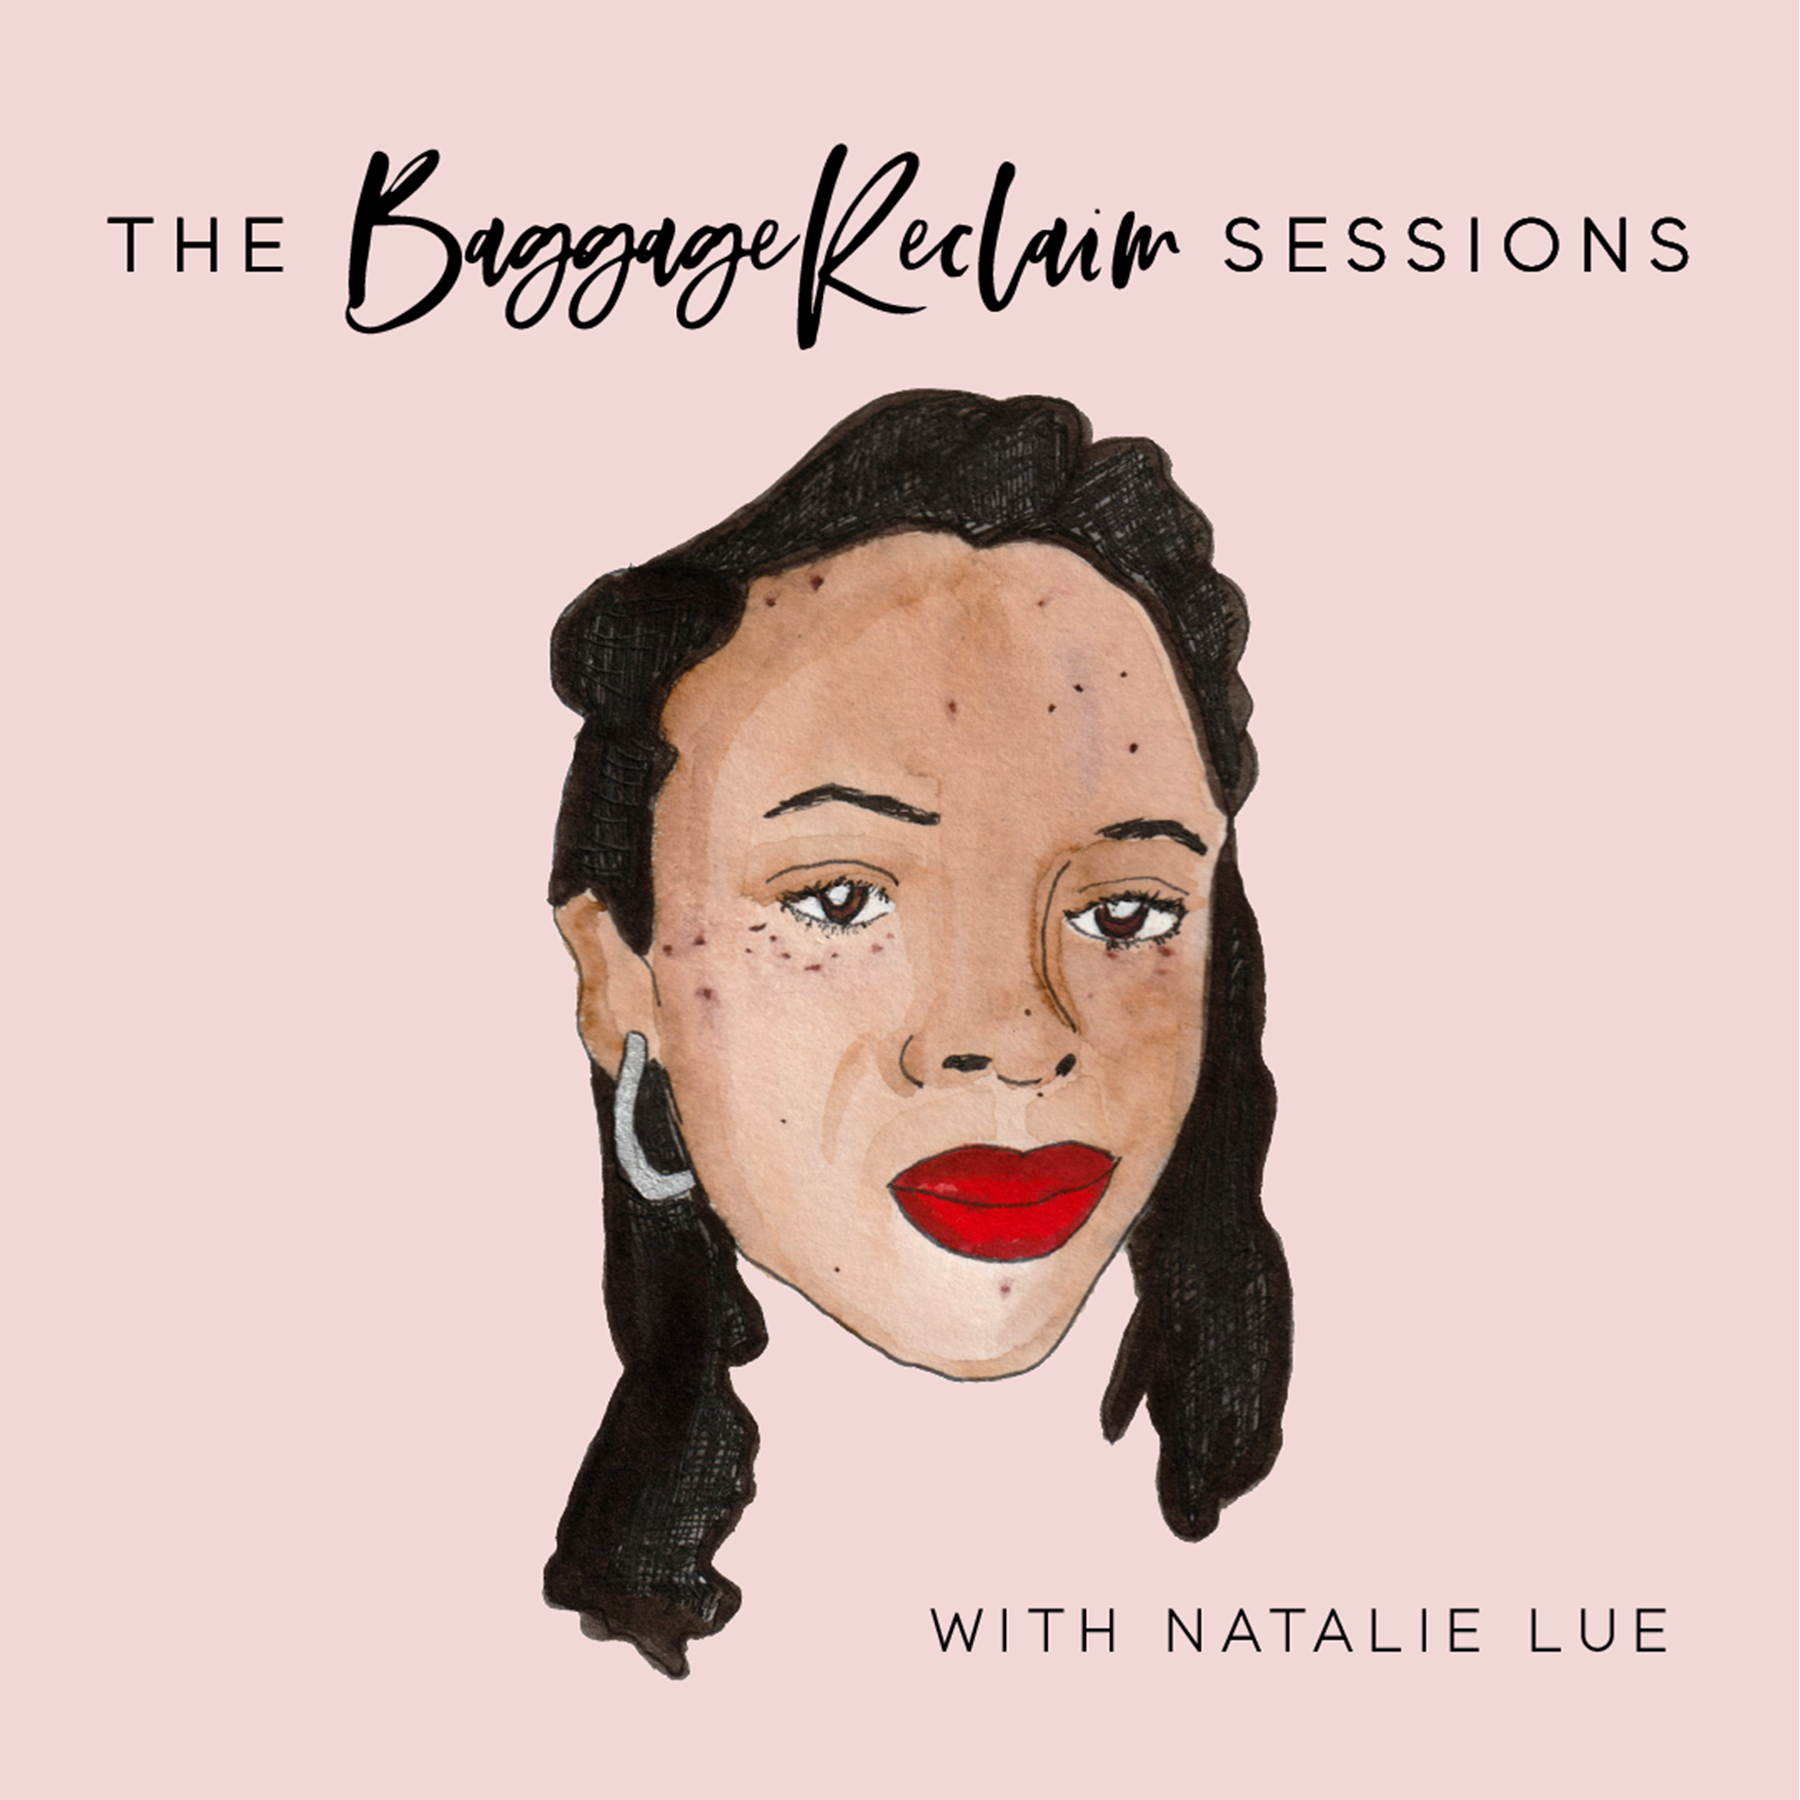 The Baggage Reclaim Sessions on Apple Podcasts